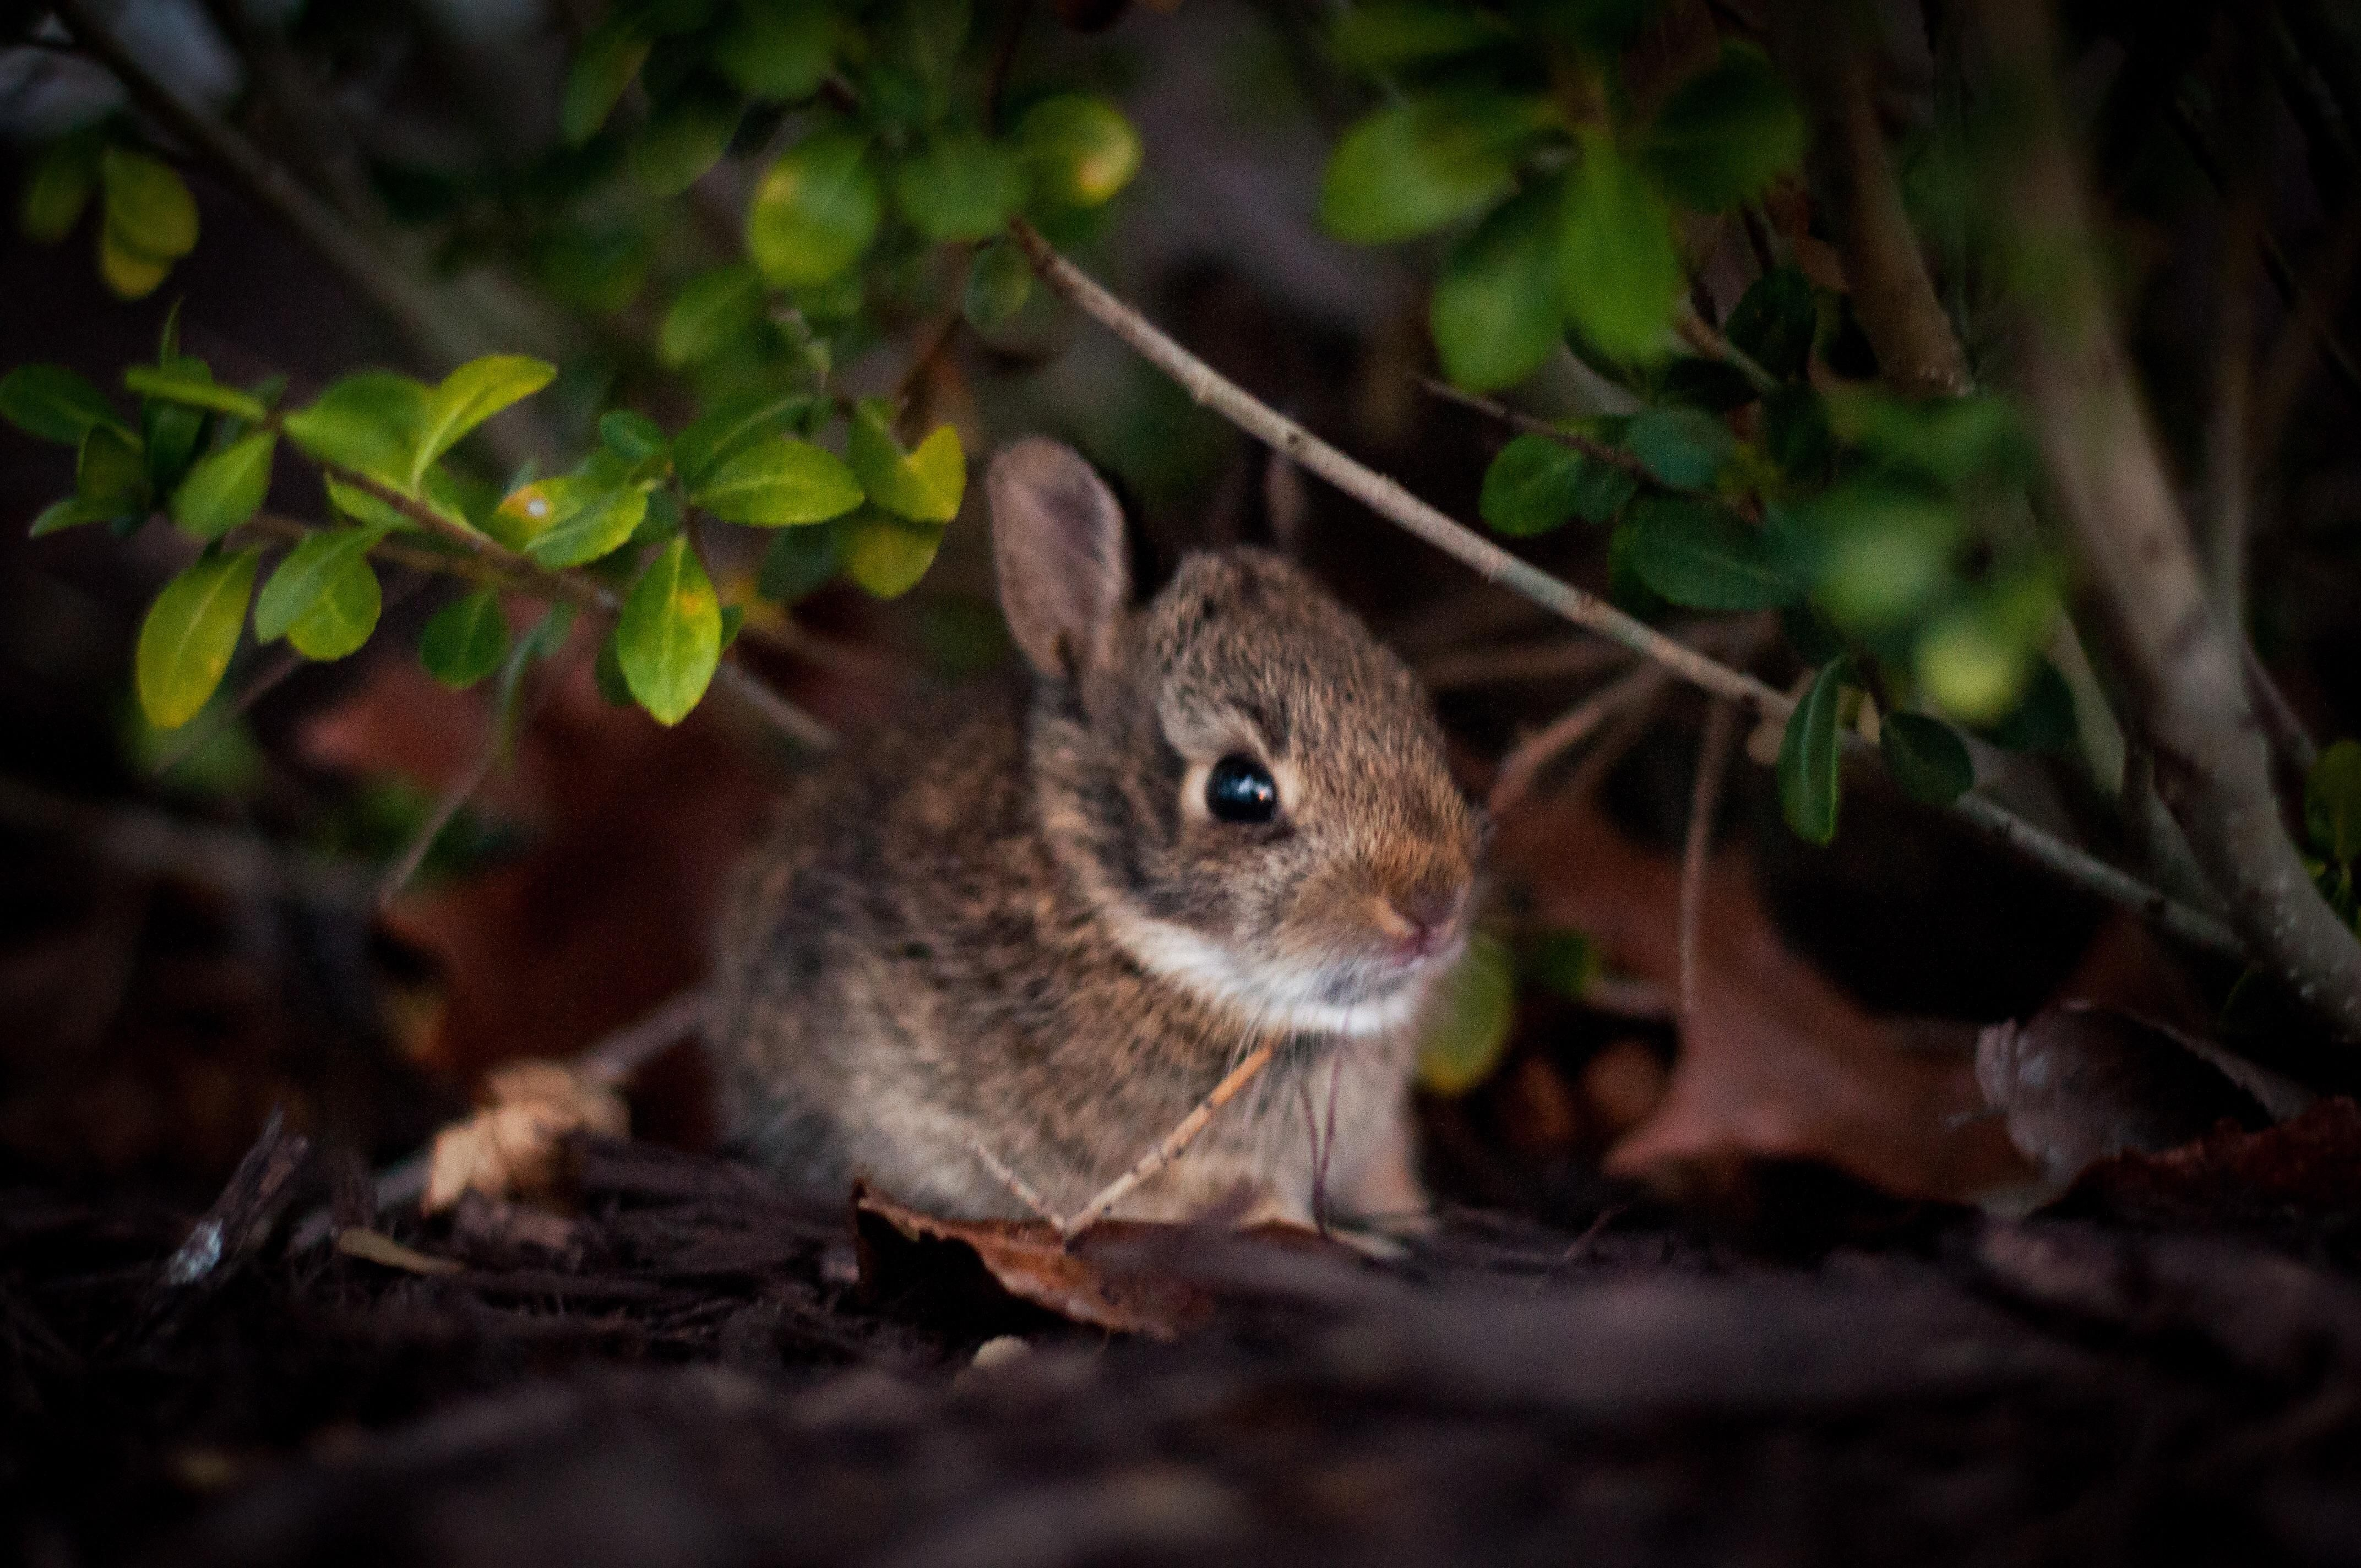 Baby bunnies out front let me photograph them http://ift.tt/2qlrO2Z